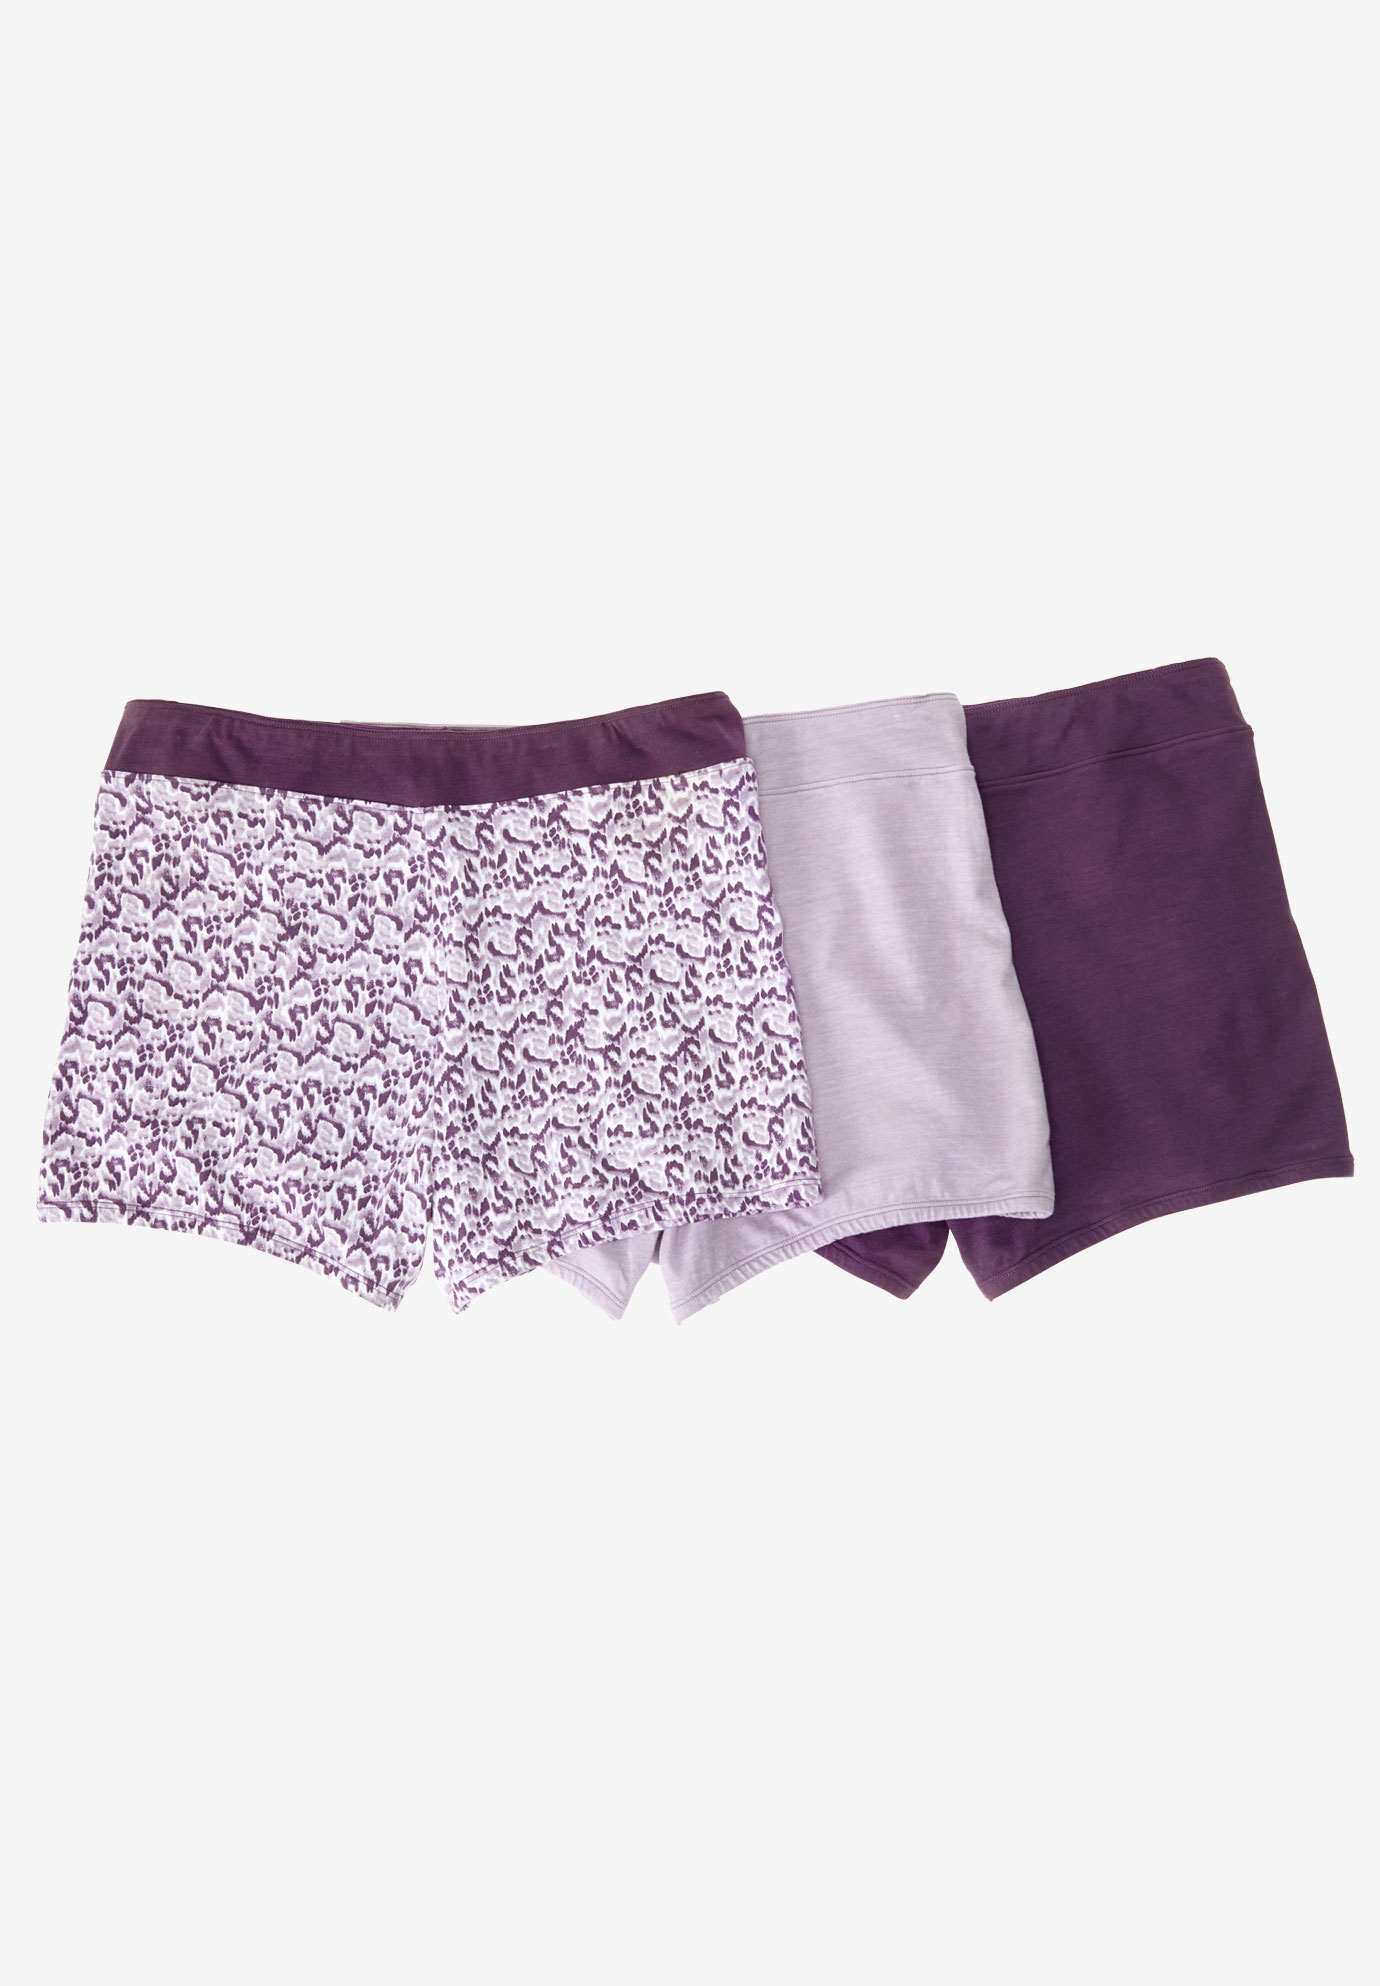 Boyshorts 3-Pack by Comfort Choice®, MISTY PURPLE PACK, hi-res